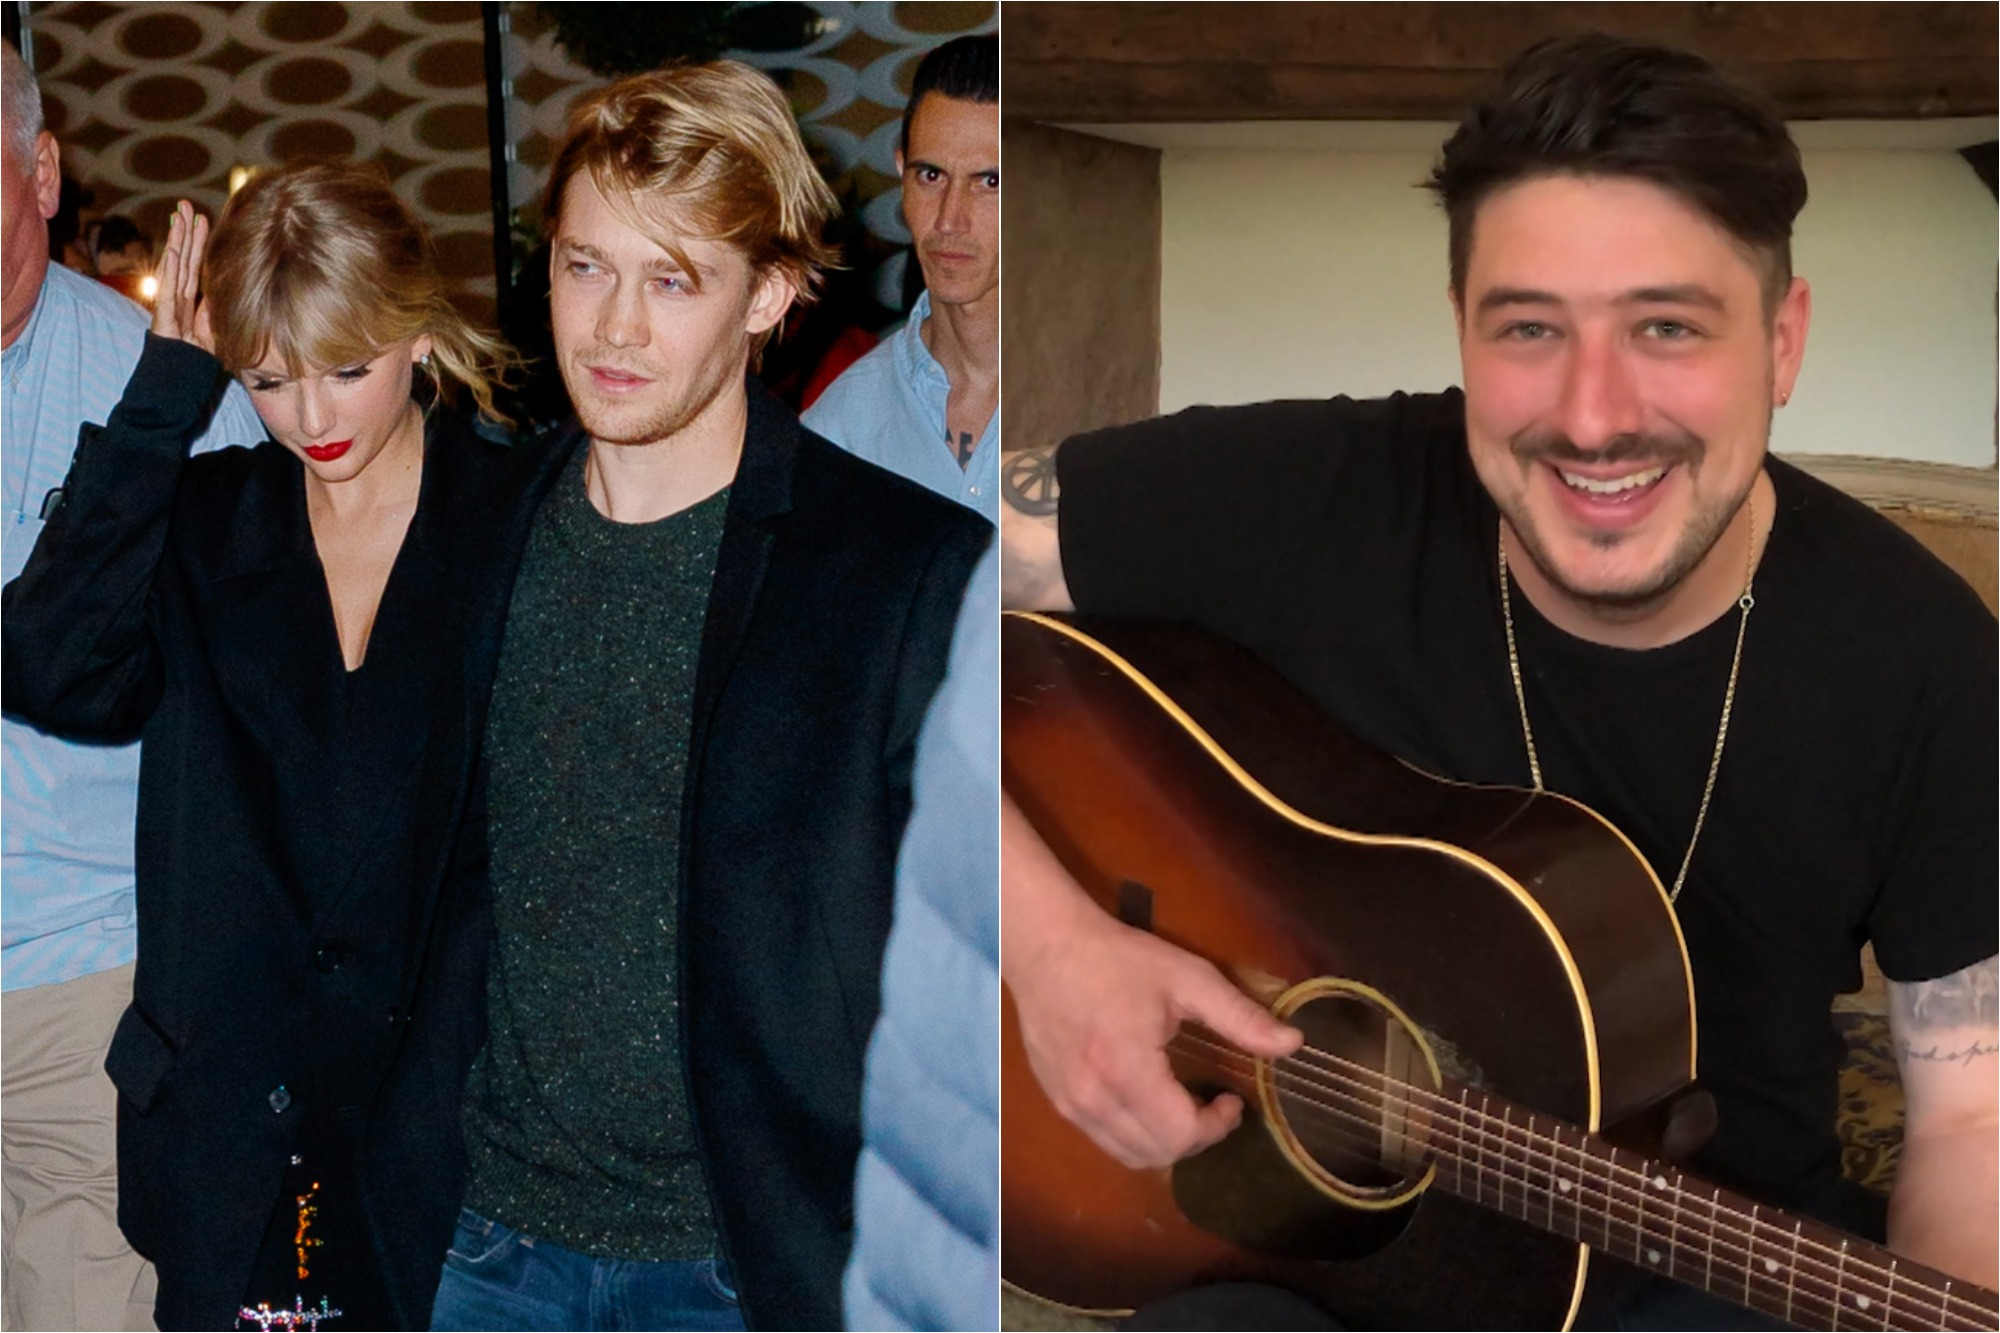 Taylor Swift and Joe Alwyn depart Zuma on Oct. 06, 2019 in New York City / Marcus Mumford on April 1, 2020 on the 'Tonight Show with Jimmy Fallon.'